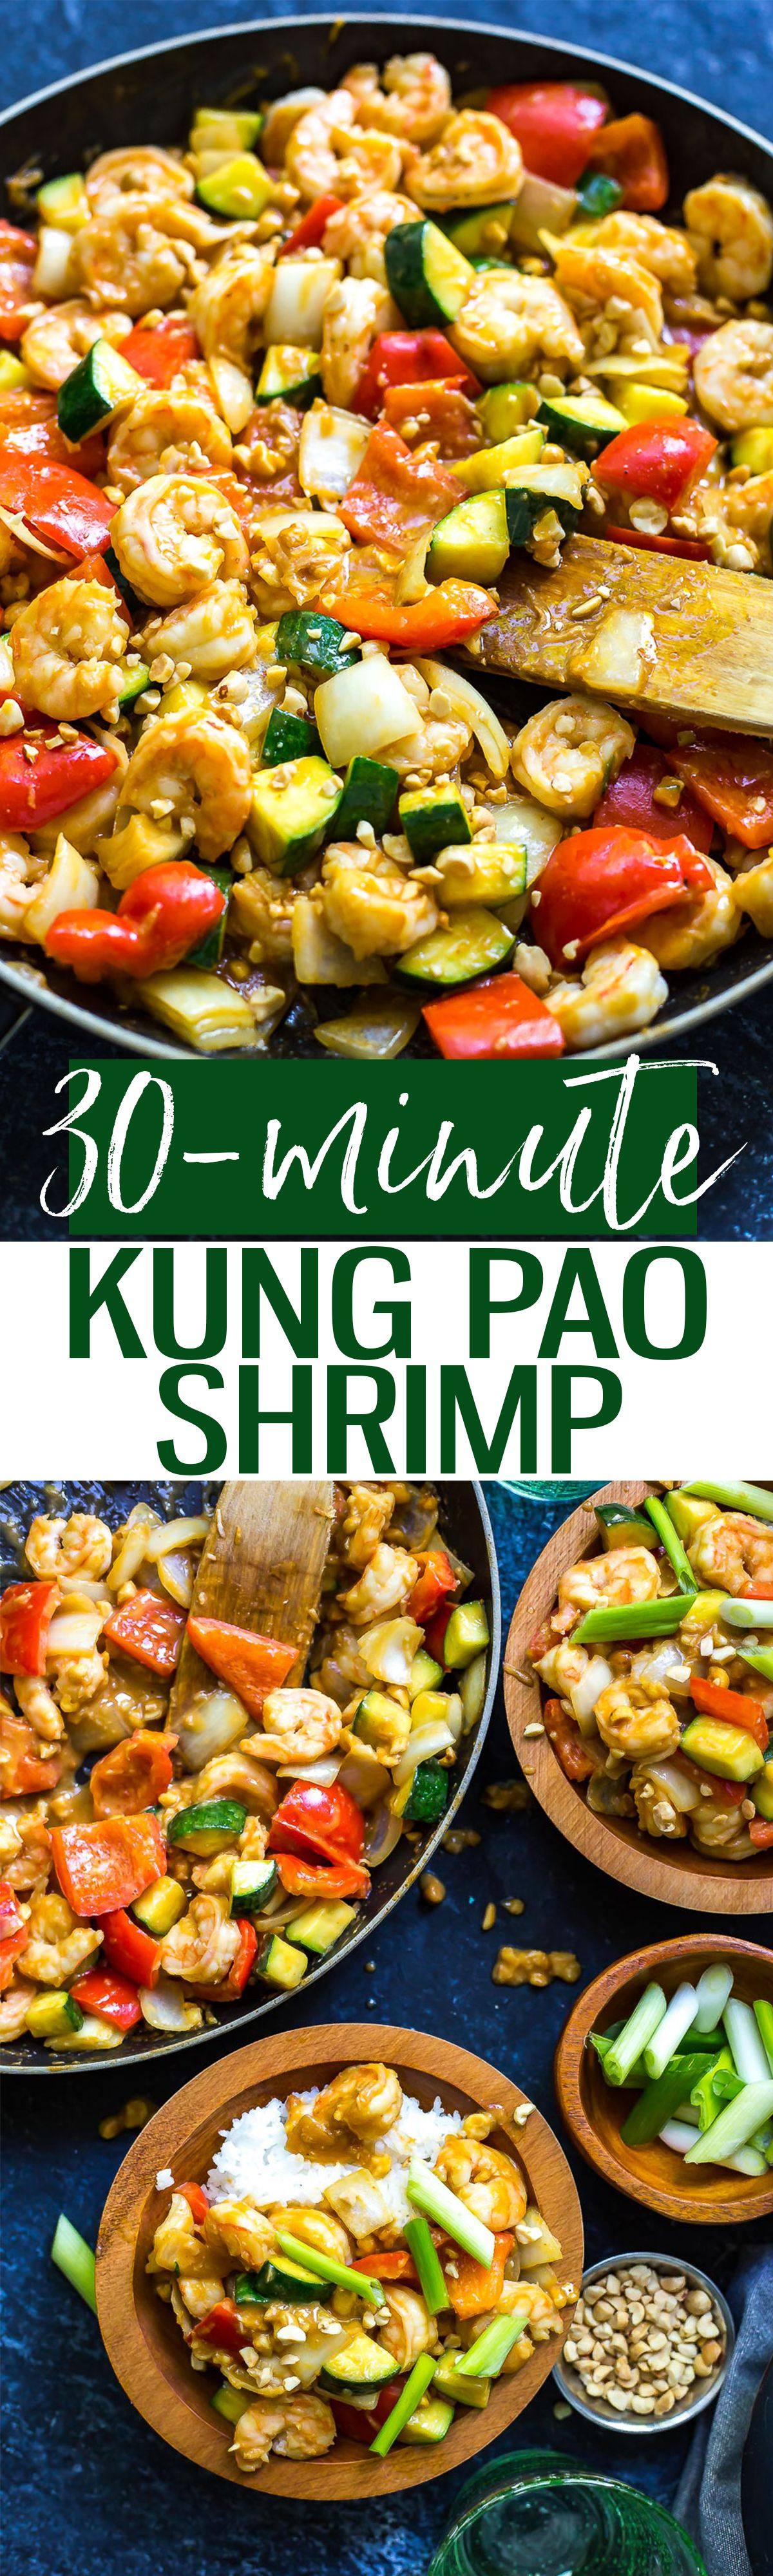 This 30-Minute Kung Pao Shrimp is a delicious quick and easy stir fry that's perfect for getting dinner on the table quickly! Switch up the veggies to use whatever's leftover in your fridge!